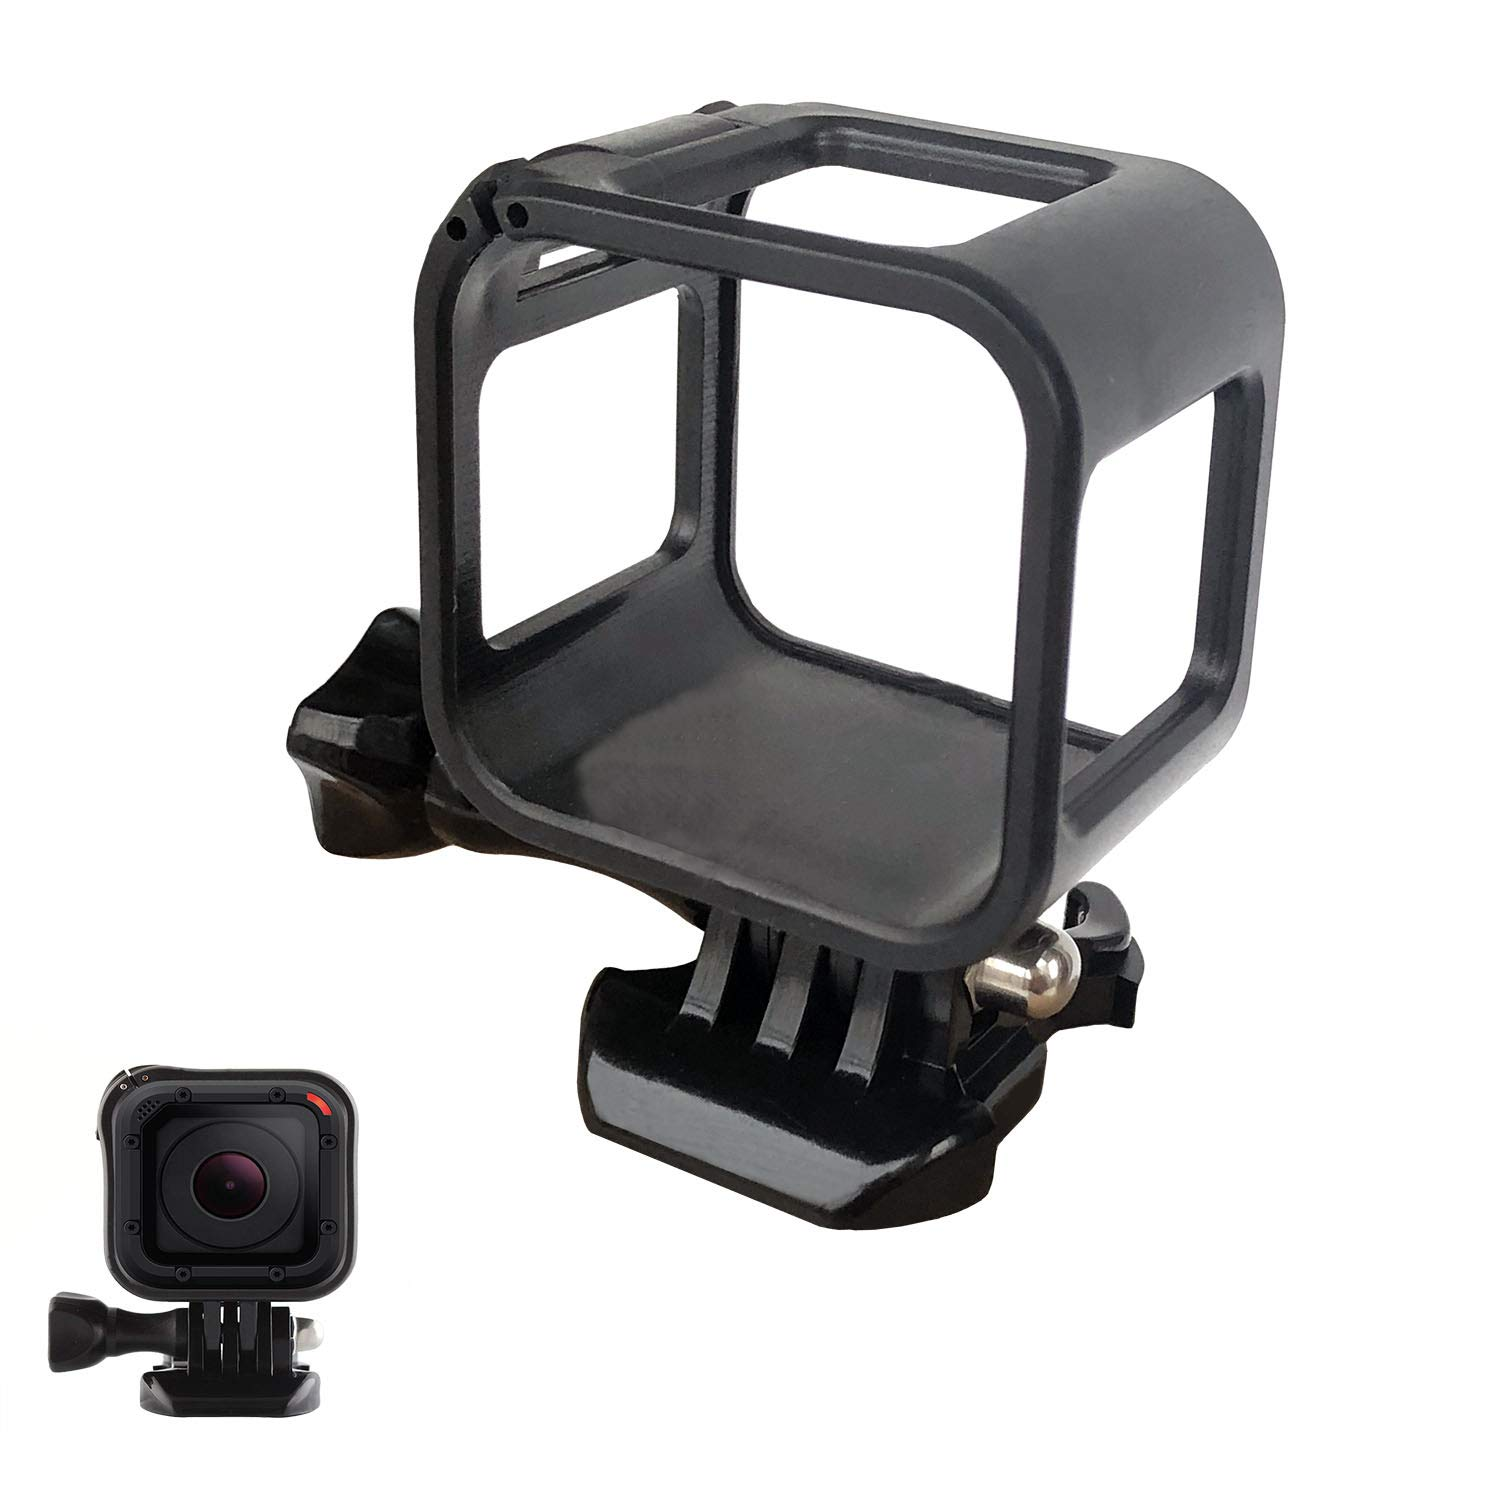 Amazon.com : Camera Protective Housing Frame Shell Case for ...